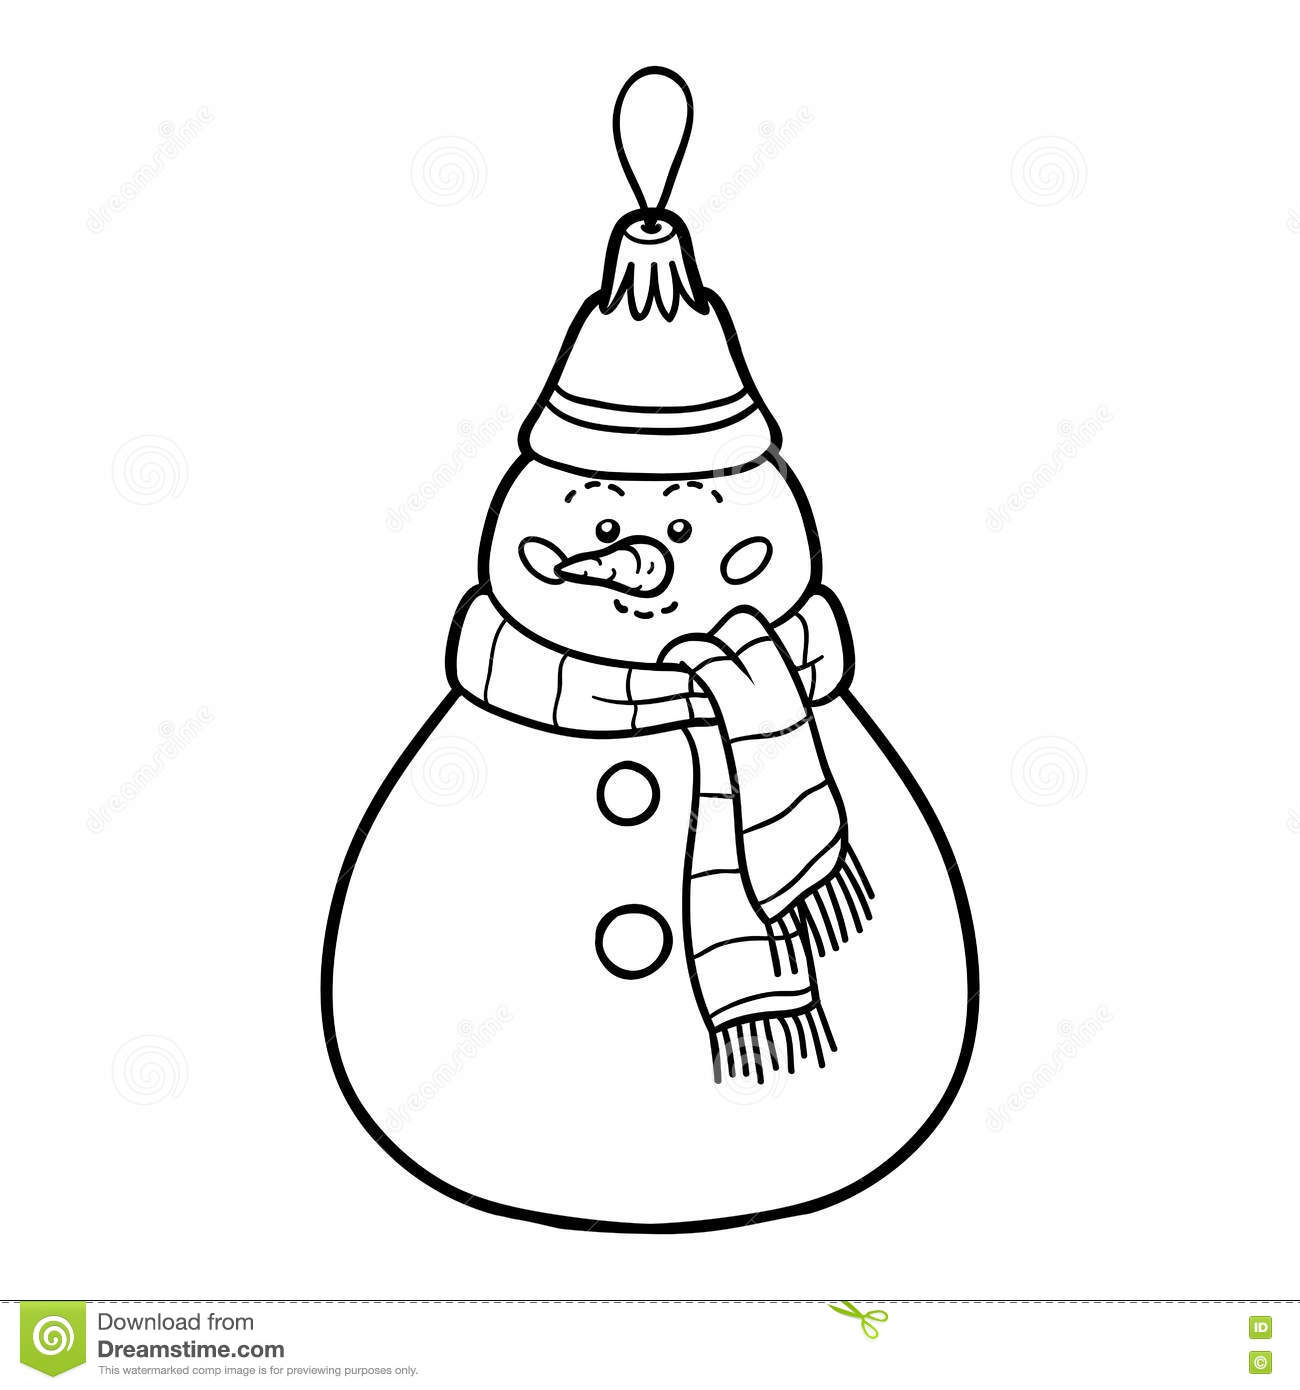 Coloring Book, Christmas Tree Toy, Snowman Stock Vector ...